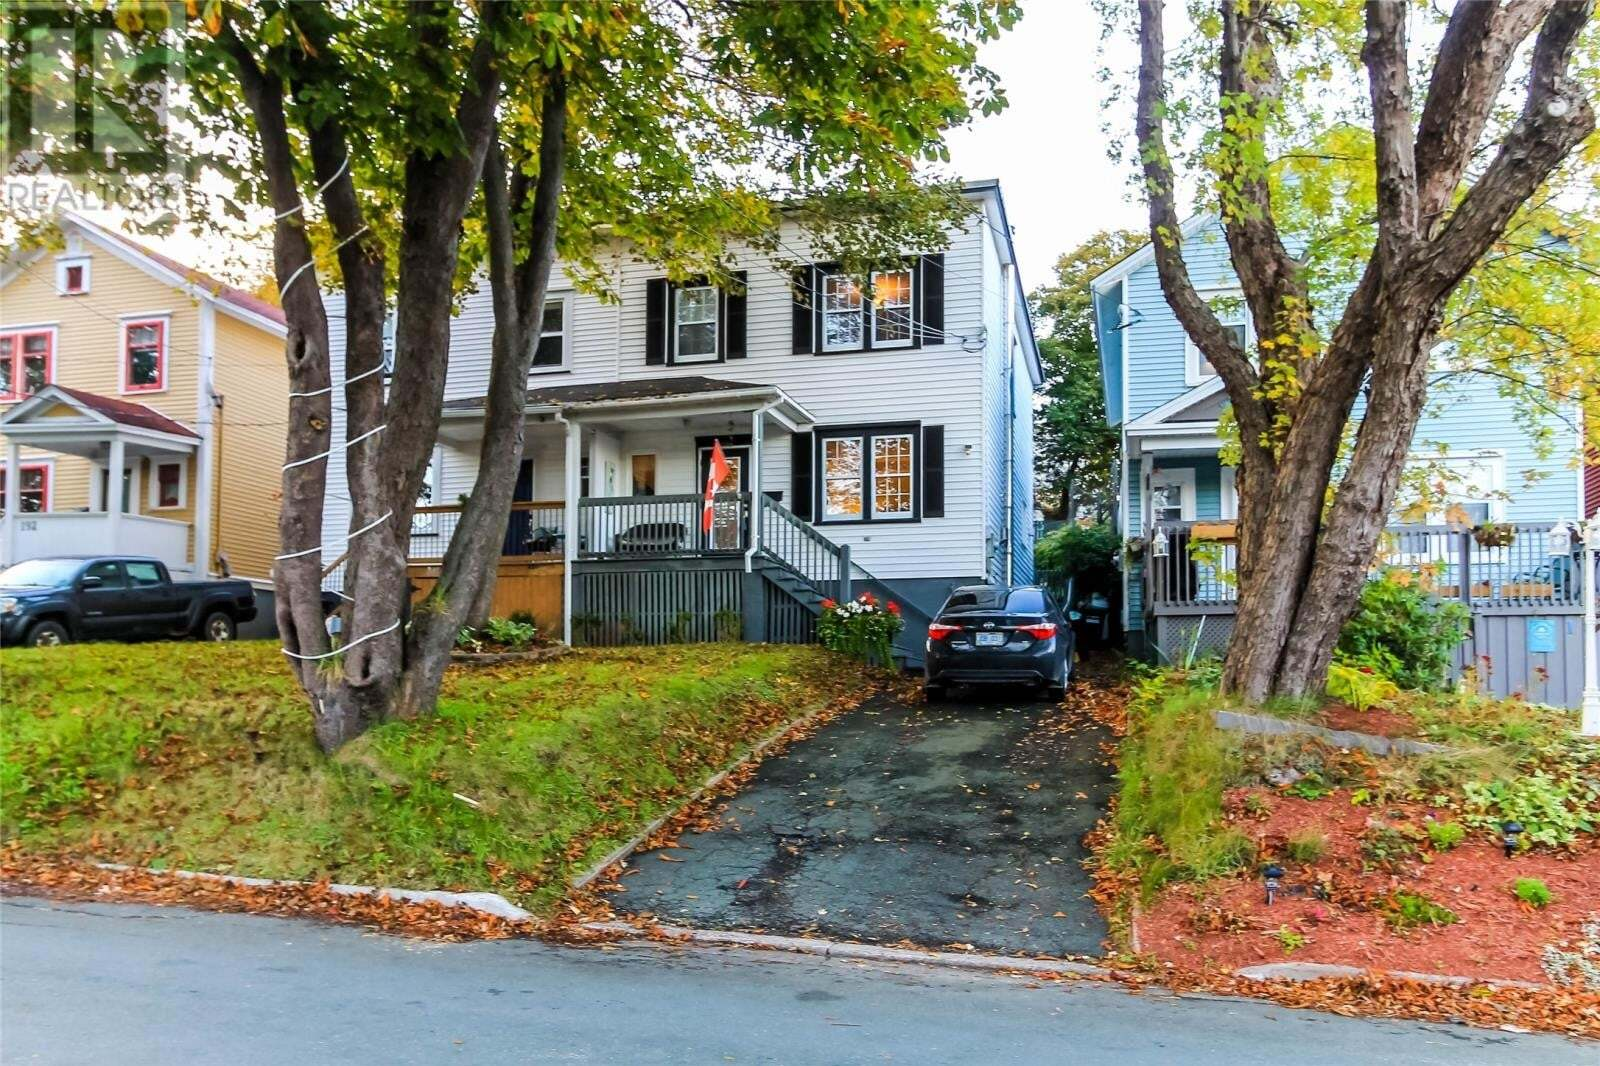 House for sale at 188 Topsail Rd St. John's Newfoundland - MLS: 1222572